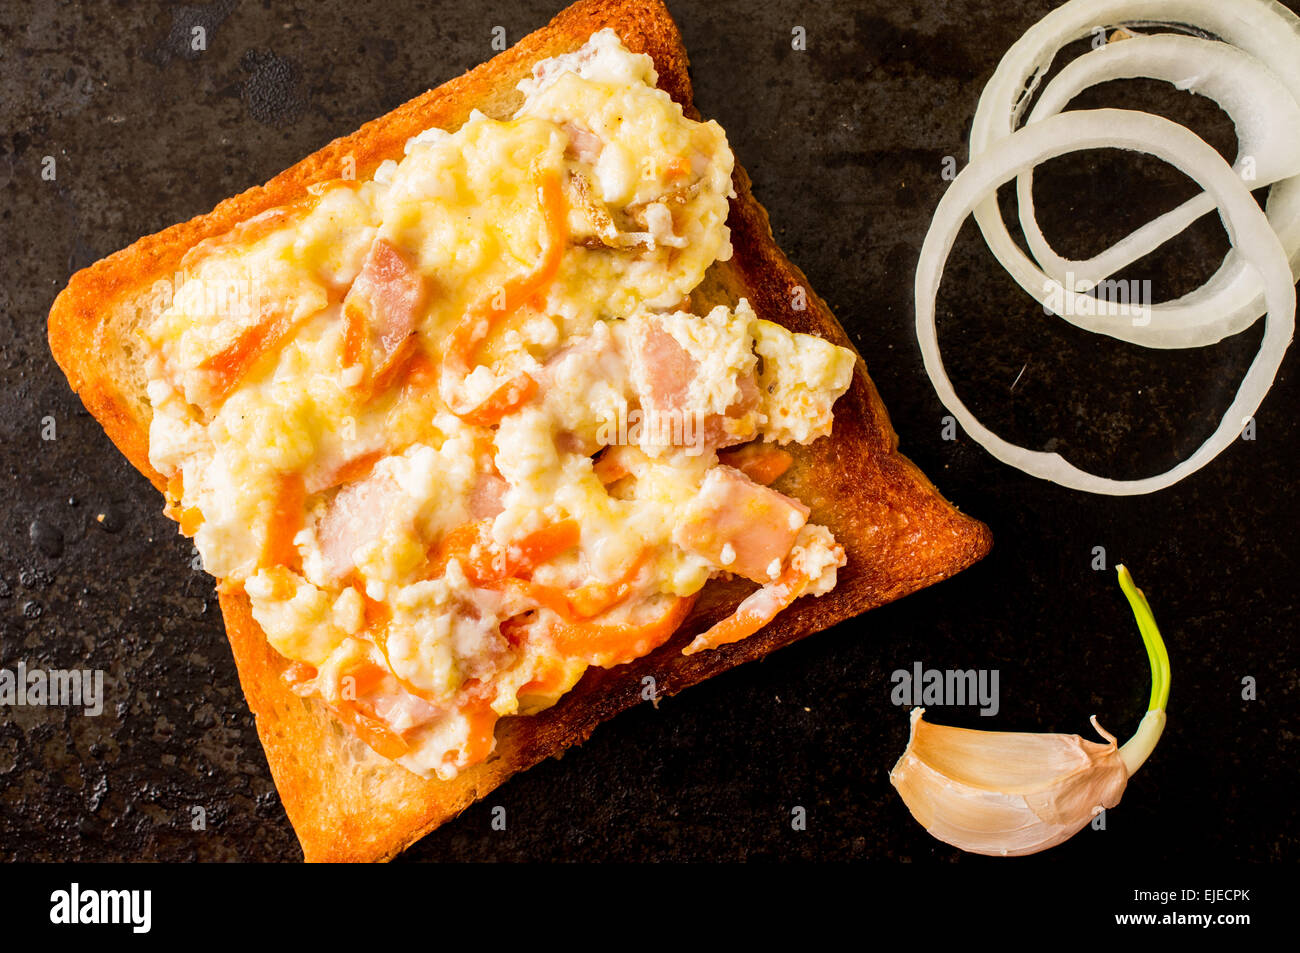 Sandwich with scrambled eggs on a black surface with onion and garlic - Stock Image